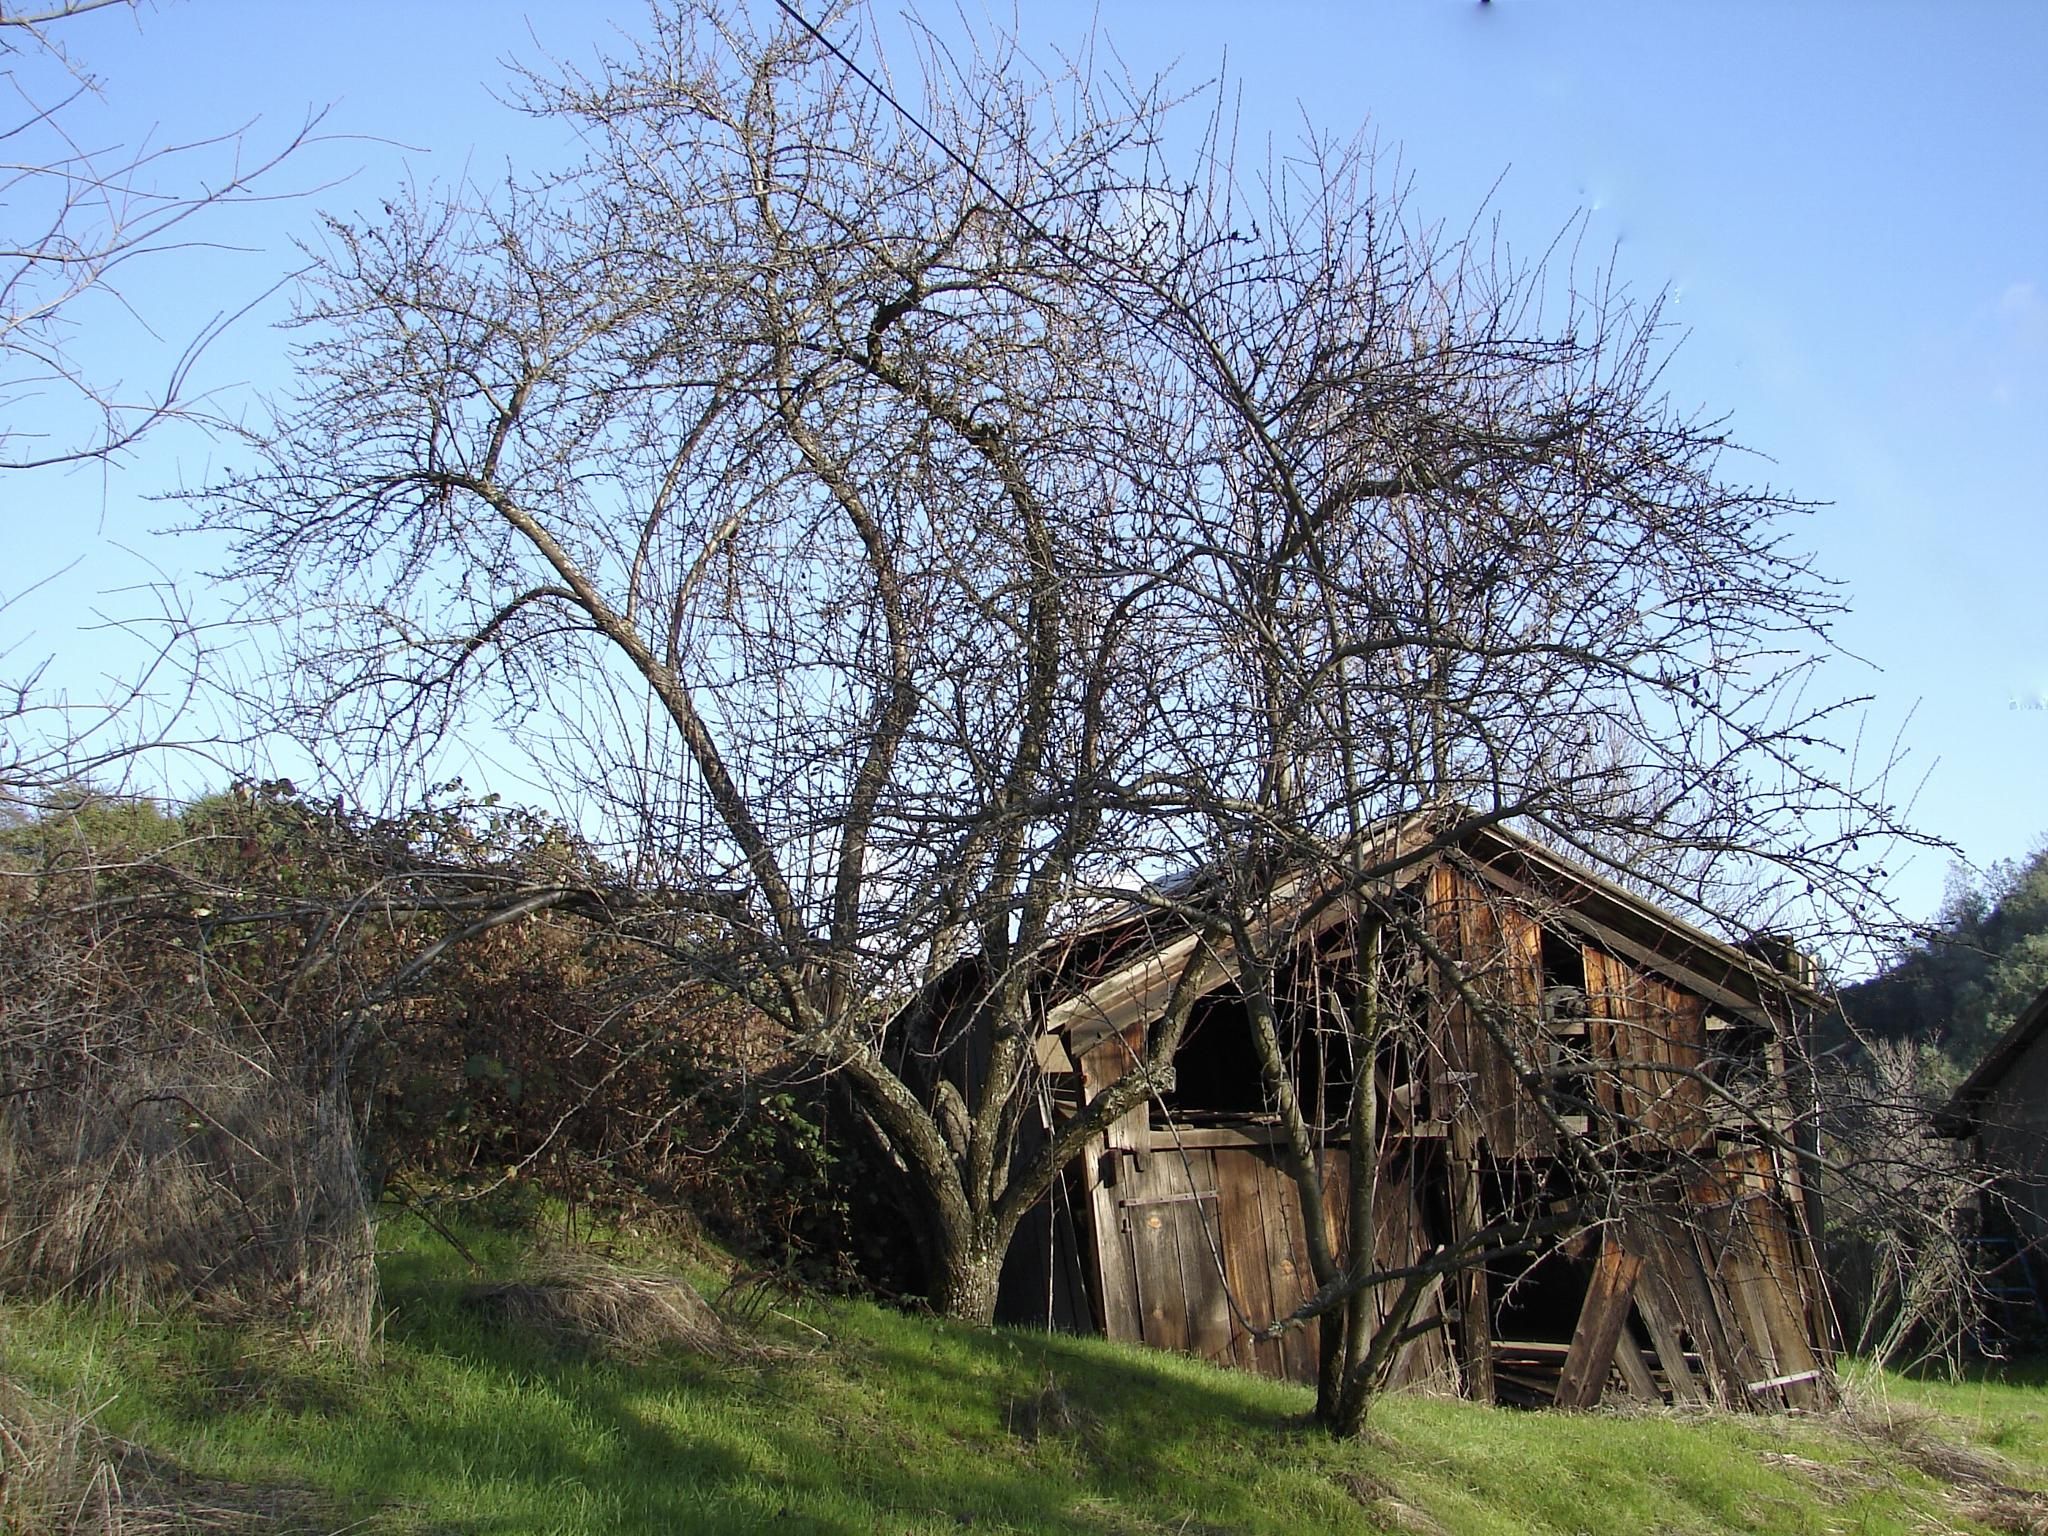 Old Gold Miner's Cabin in Sutter Creek California by MelanieAnnePhillips